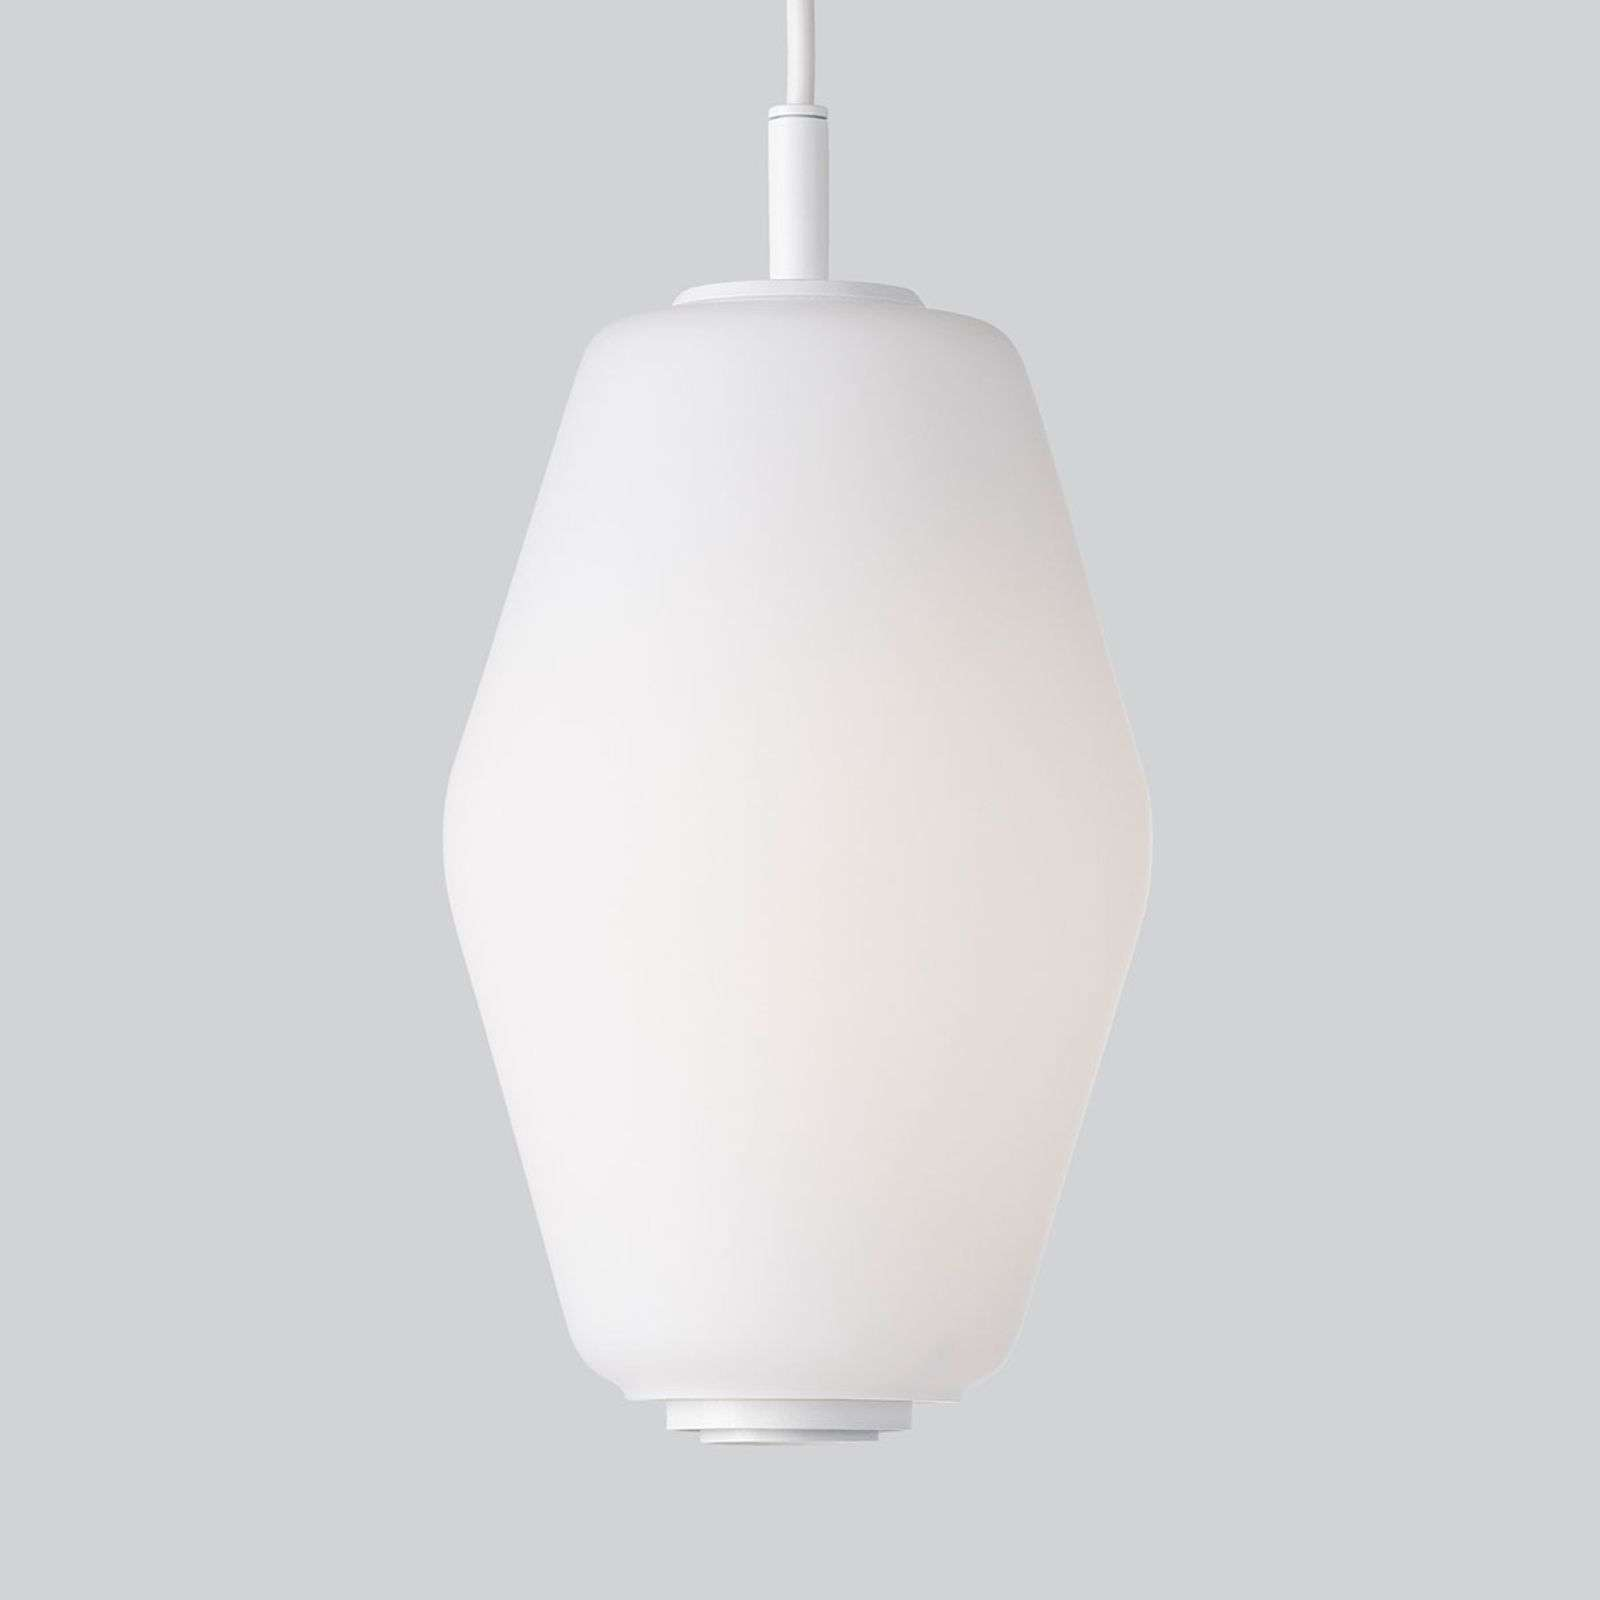 Northern Dahl hanglamp small wit